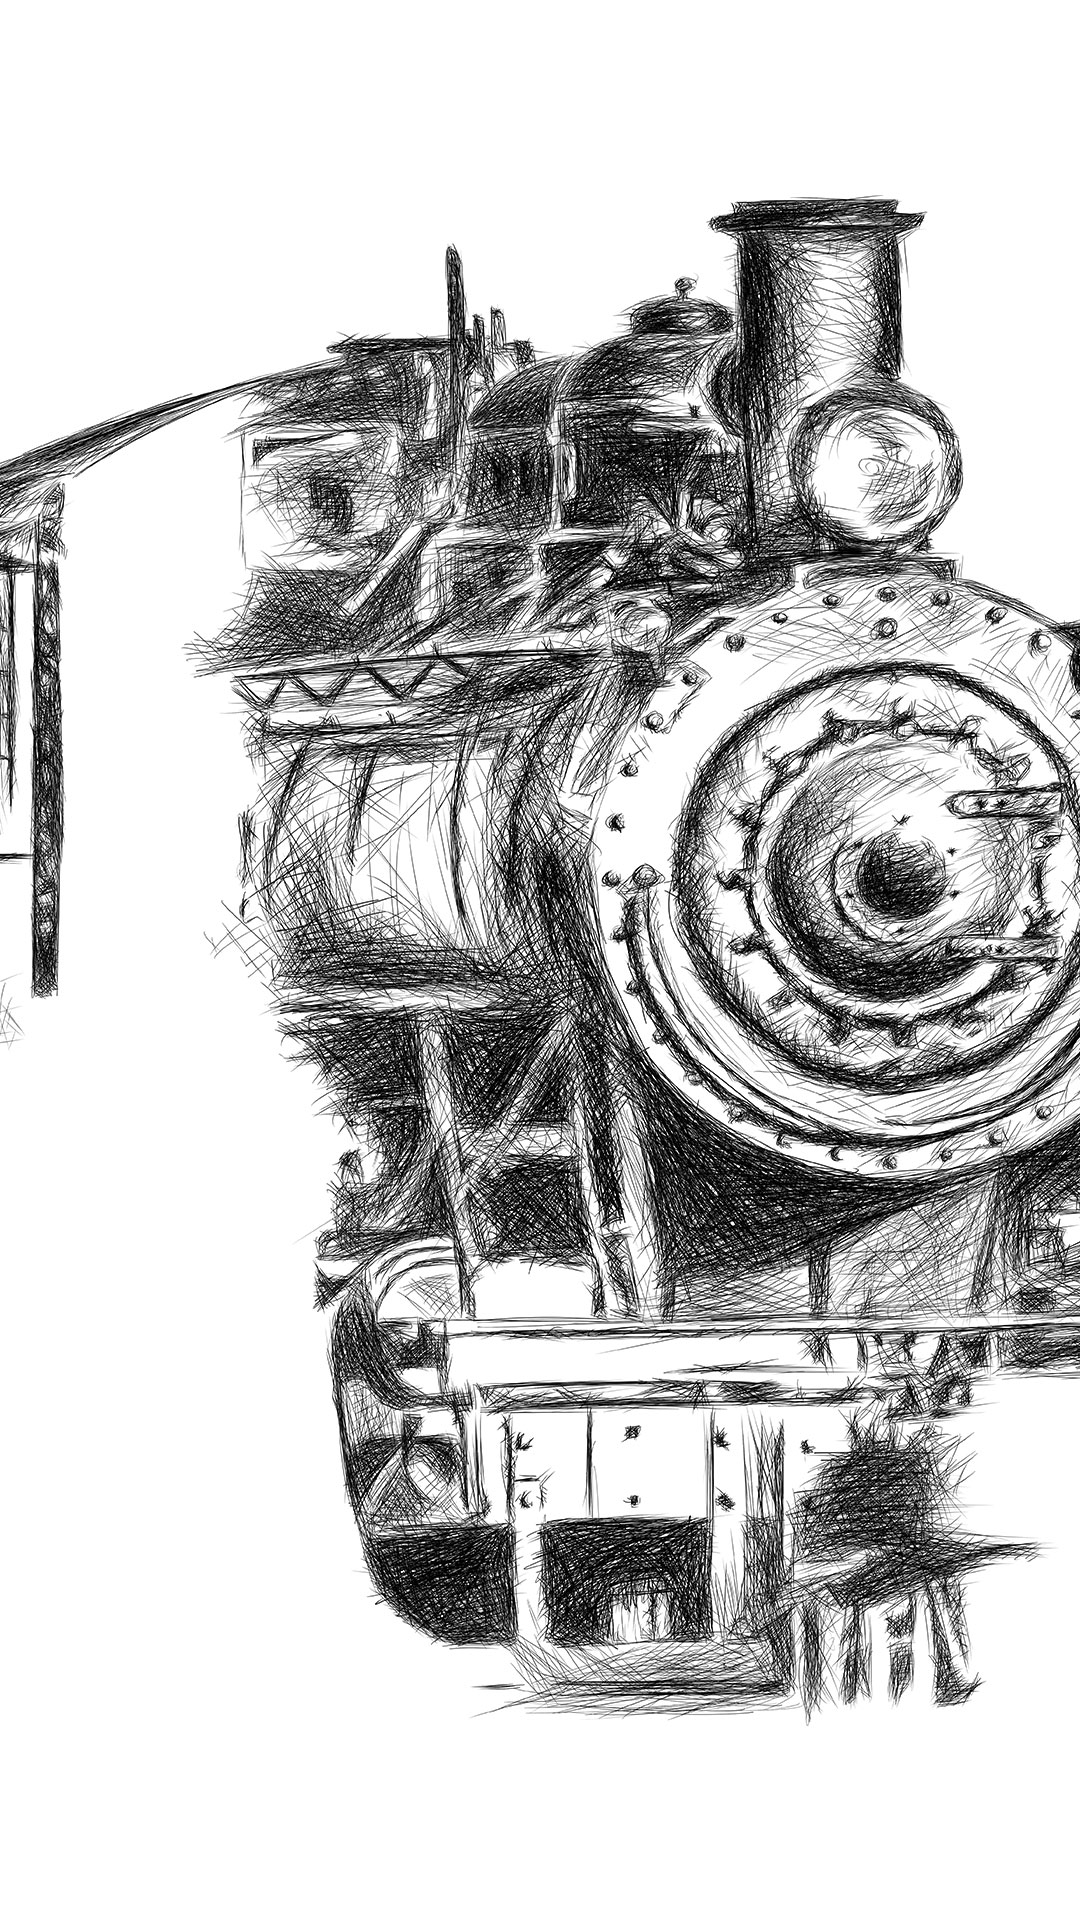 Orient Express train illustration digital pencil lines איור קטר רכבת עיפרון דיגיטלי process3